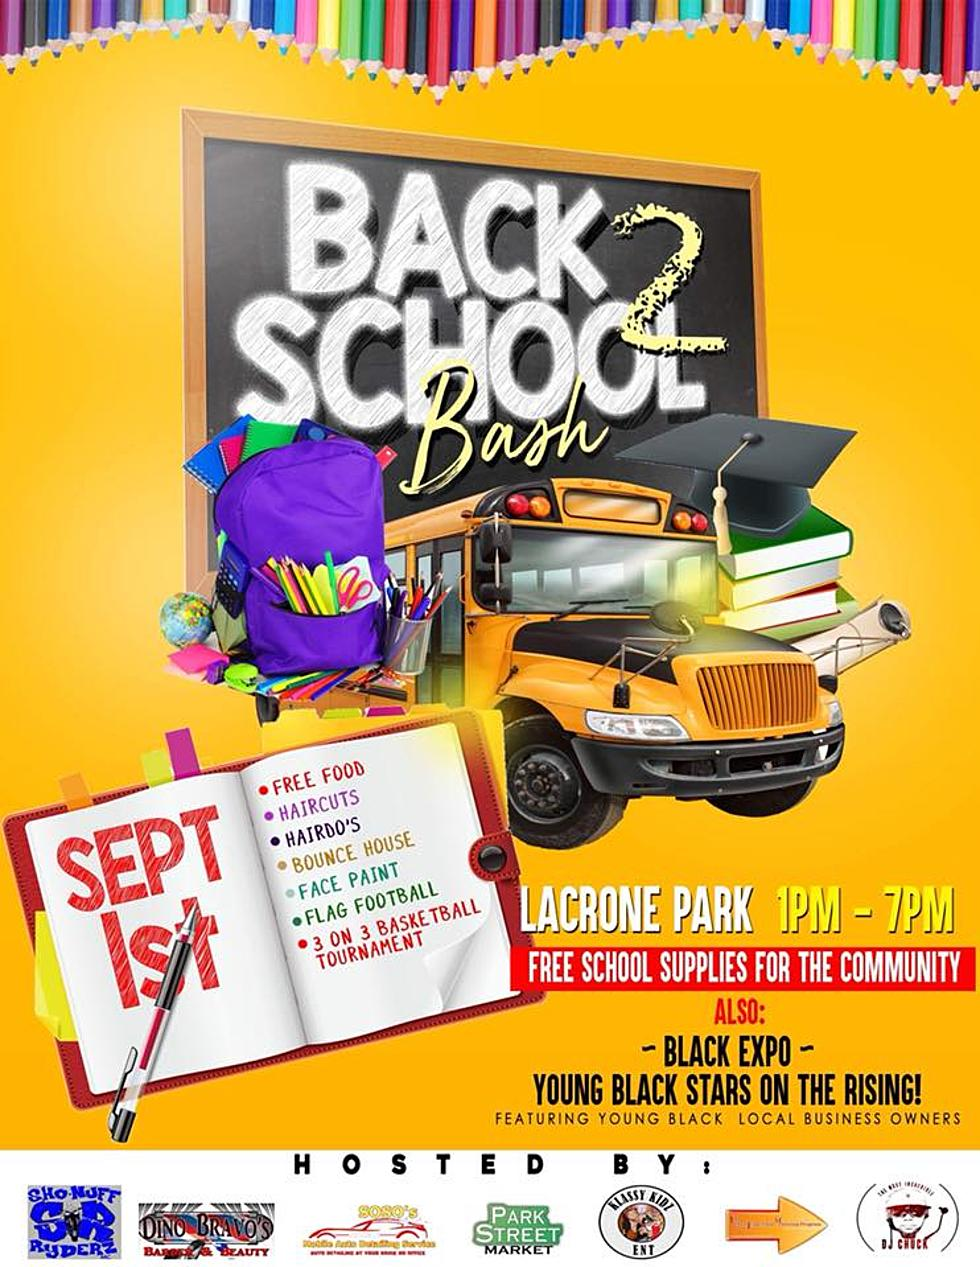 The People of Kalamazoo is hosting the 2nd annual Back2SchoolBash